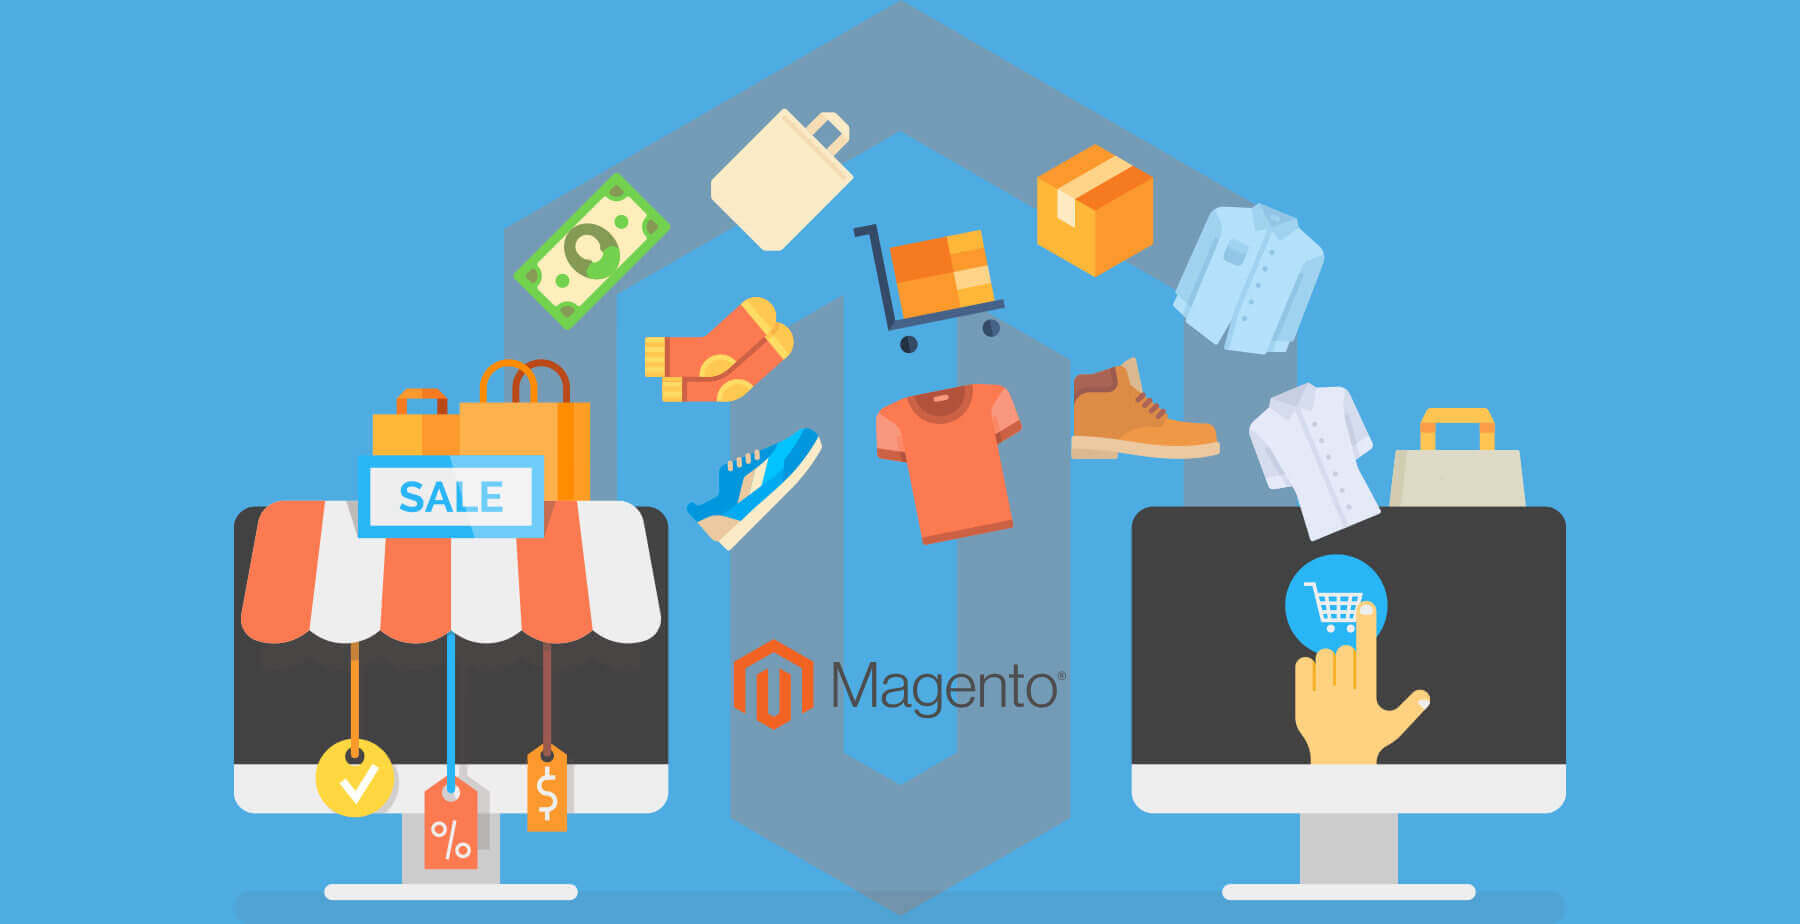 magento-store-seo-product-page-ecommerce